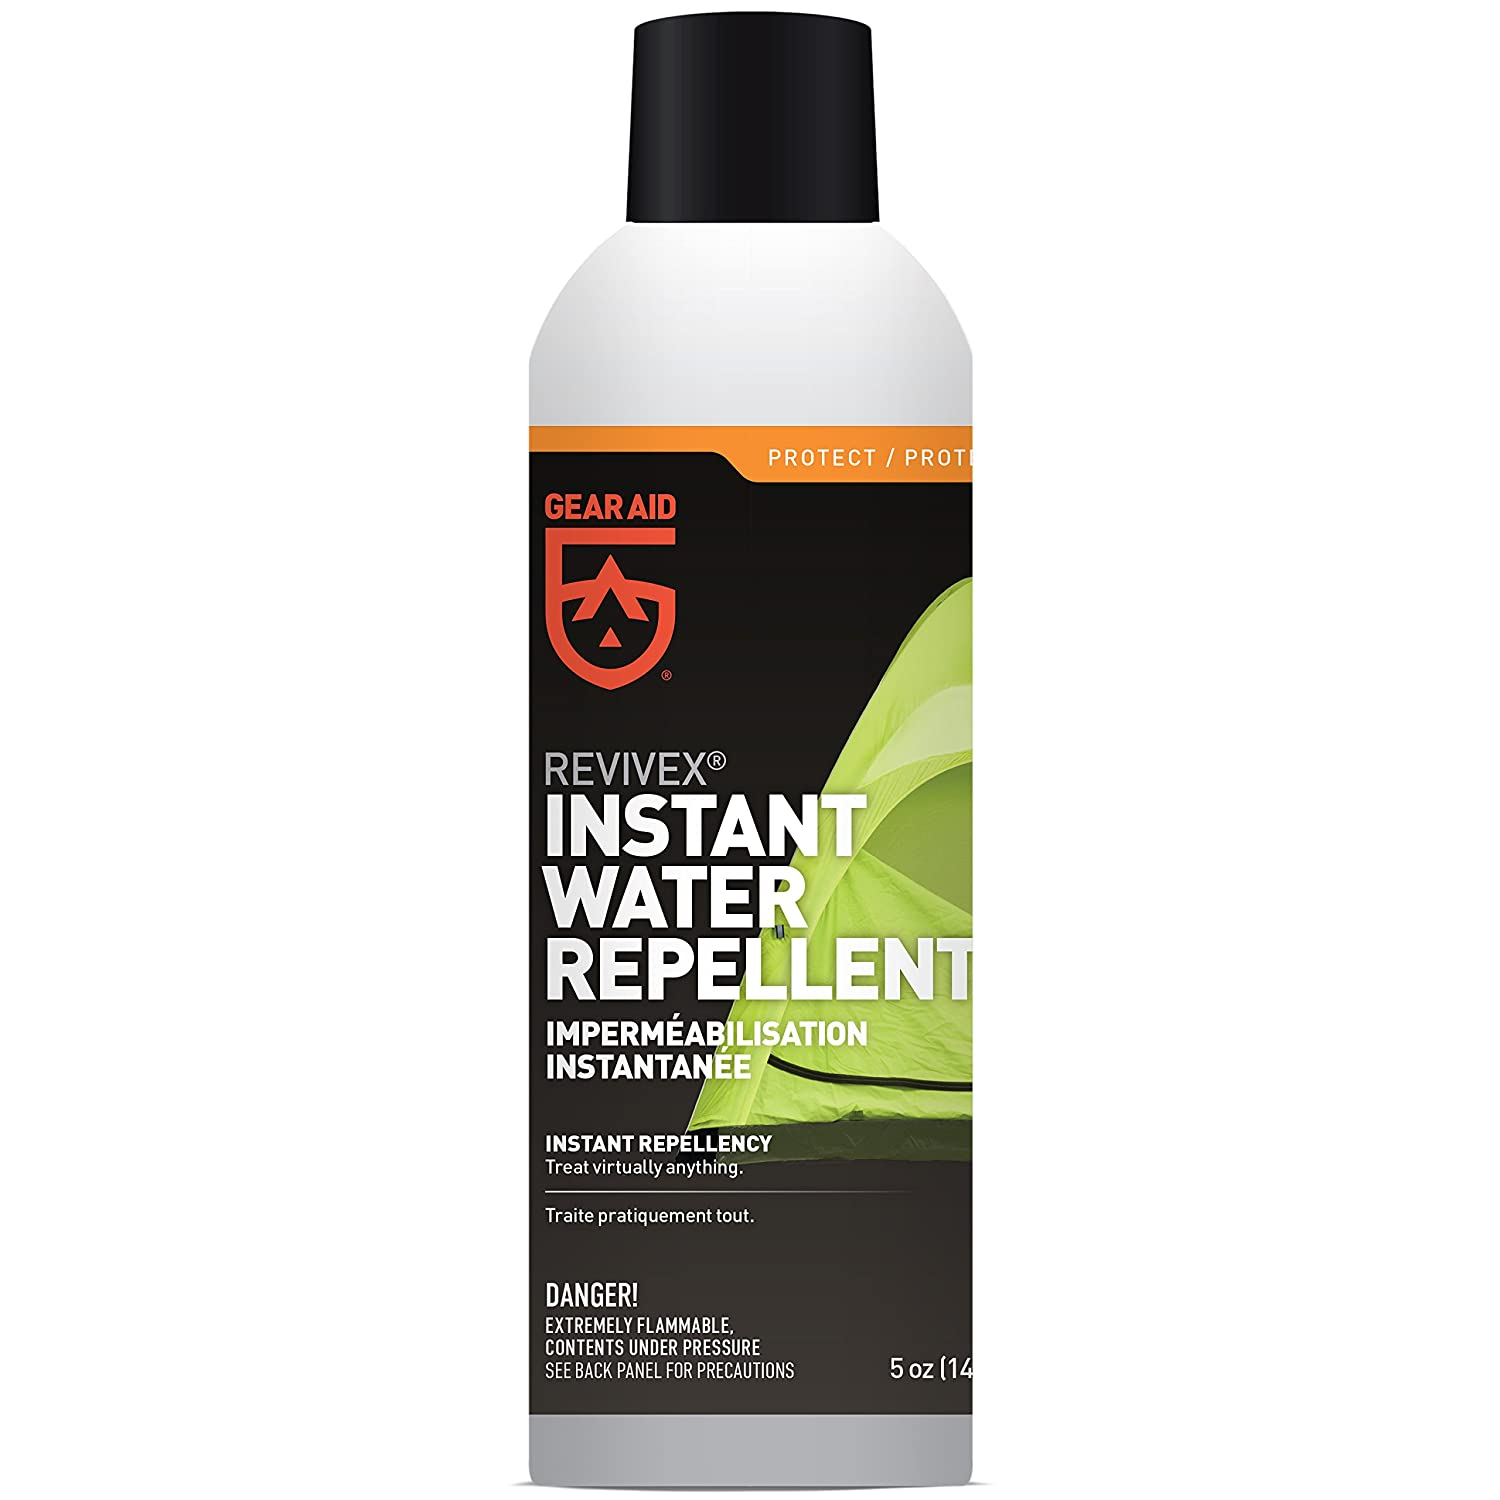 Gear Aid Revivex Instant Waterproofing Spray, Waterproofing Spray